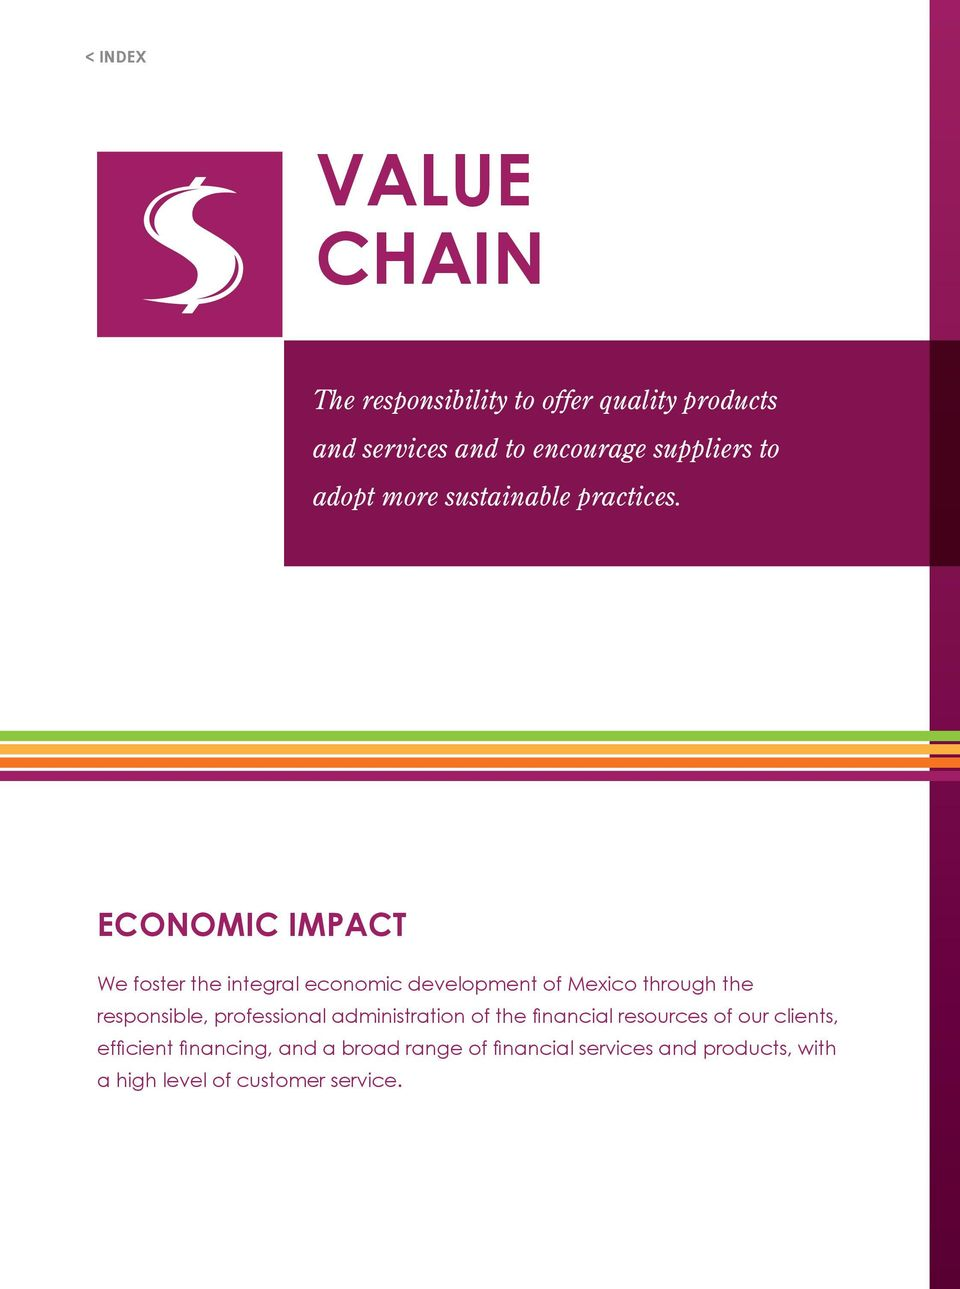 ECONOMIC IMPACT We foster the integral economic development of Mexico through the responsible,